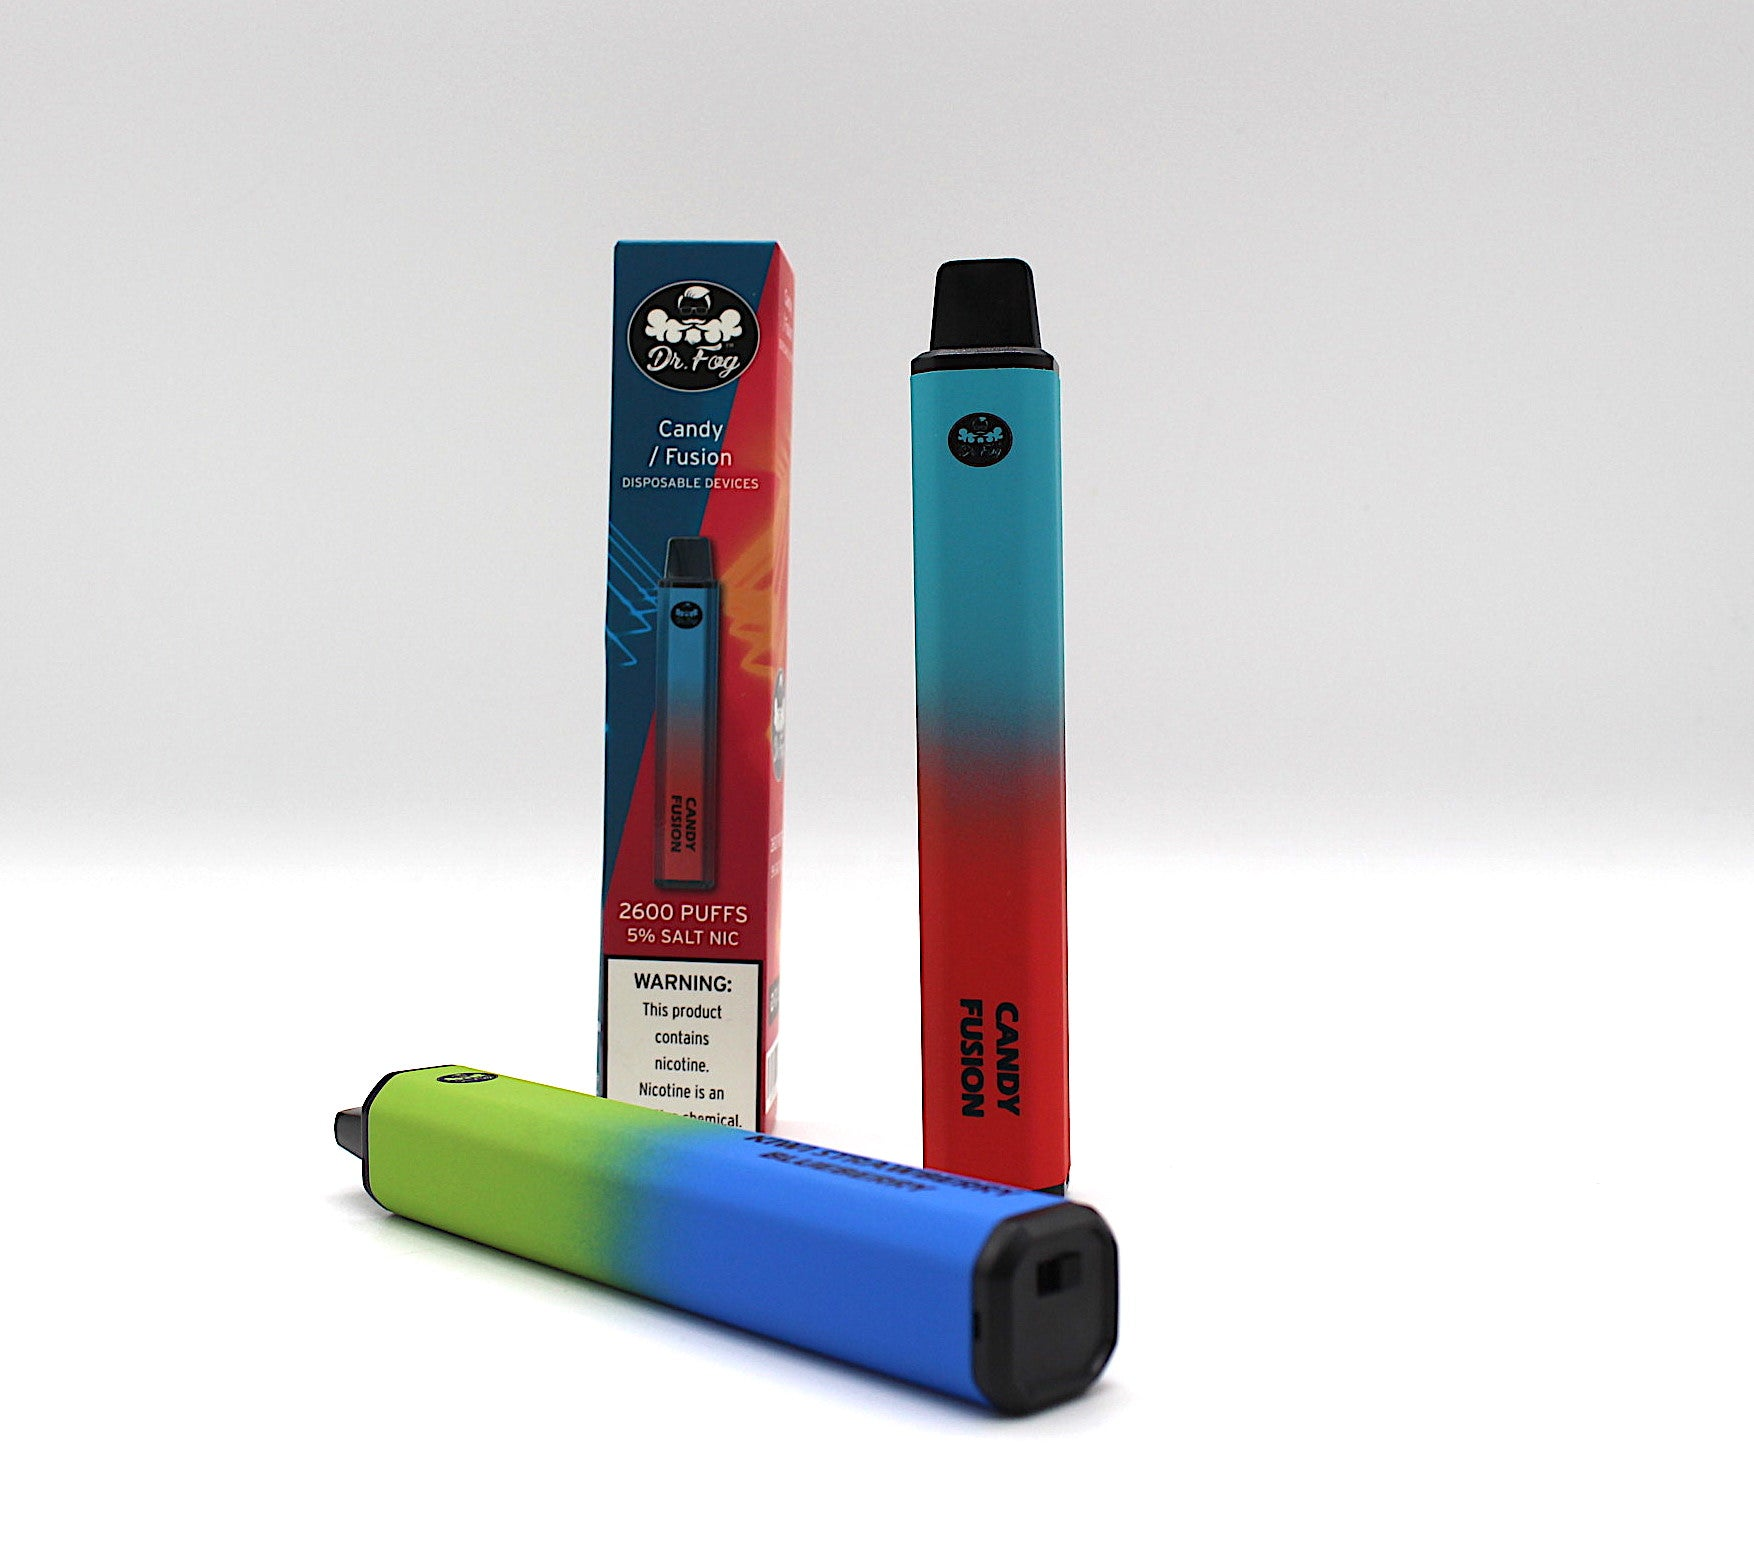 Dr Fog SWITCH Disposable 2,600 PUFFS 2-N-1 Flavor